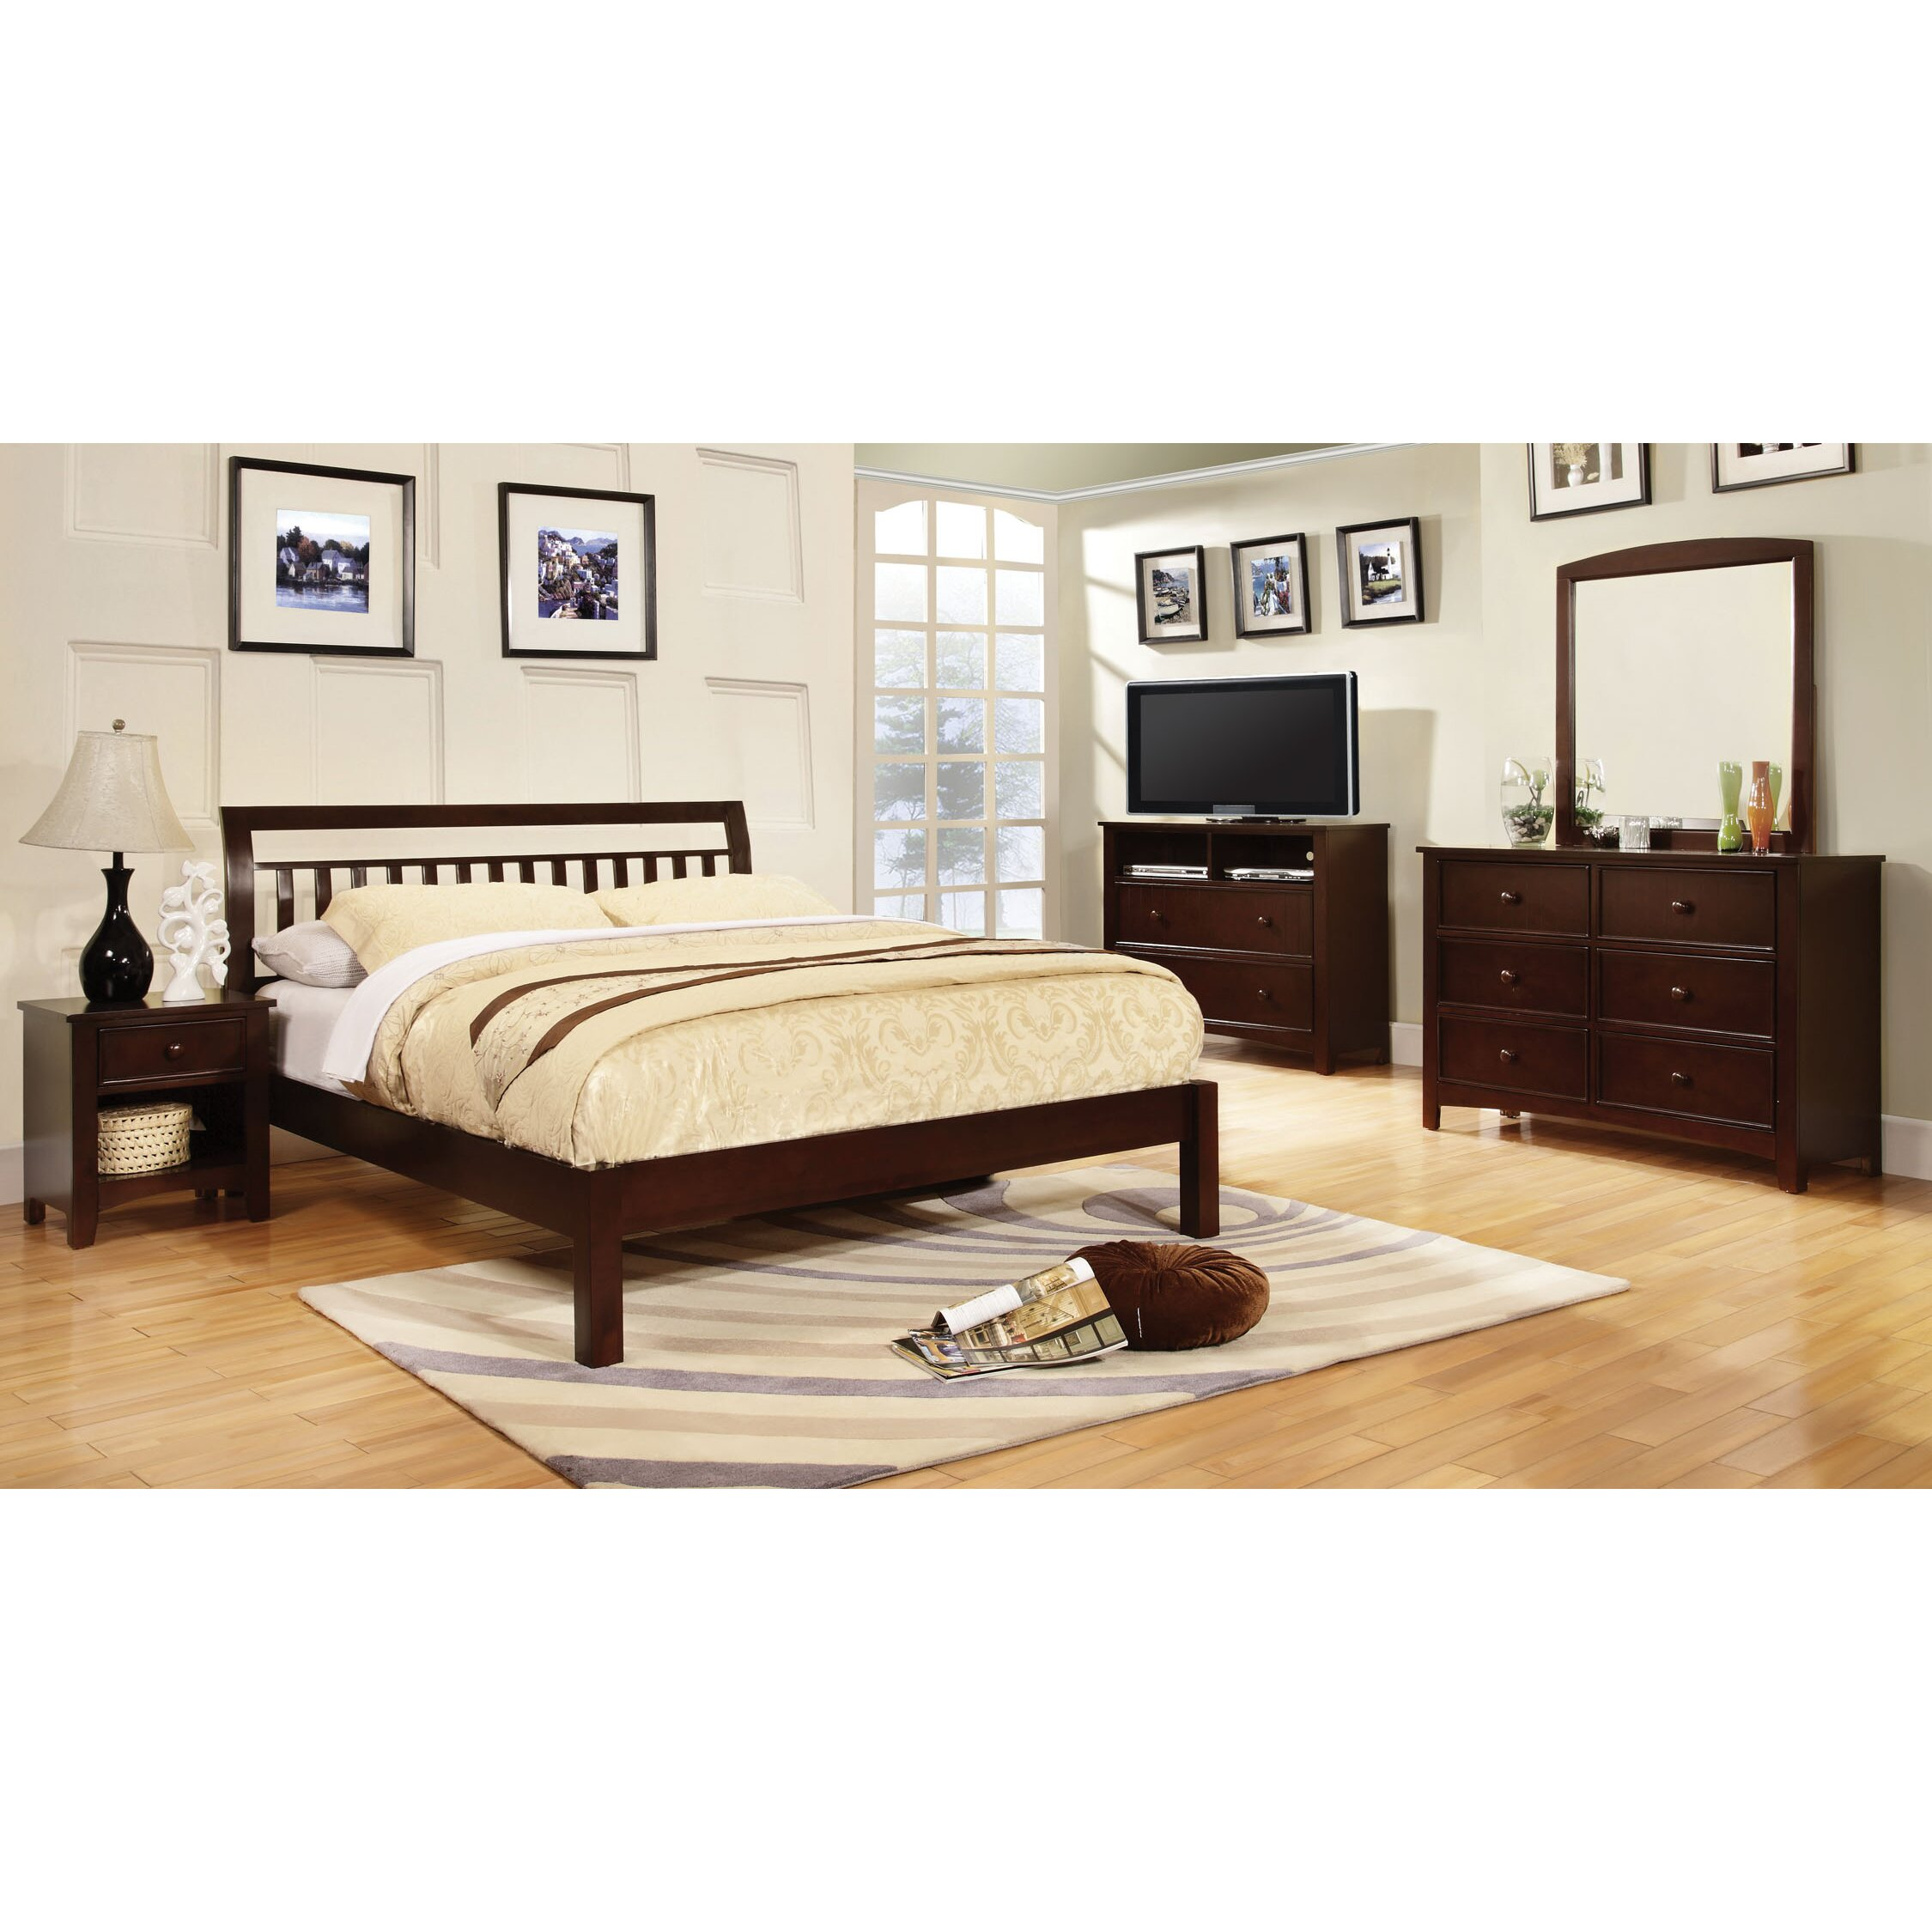 Bedroom Furniture Auburn Memsaheb Net